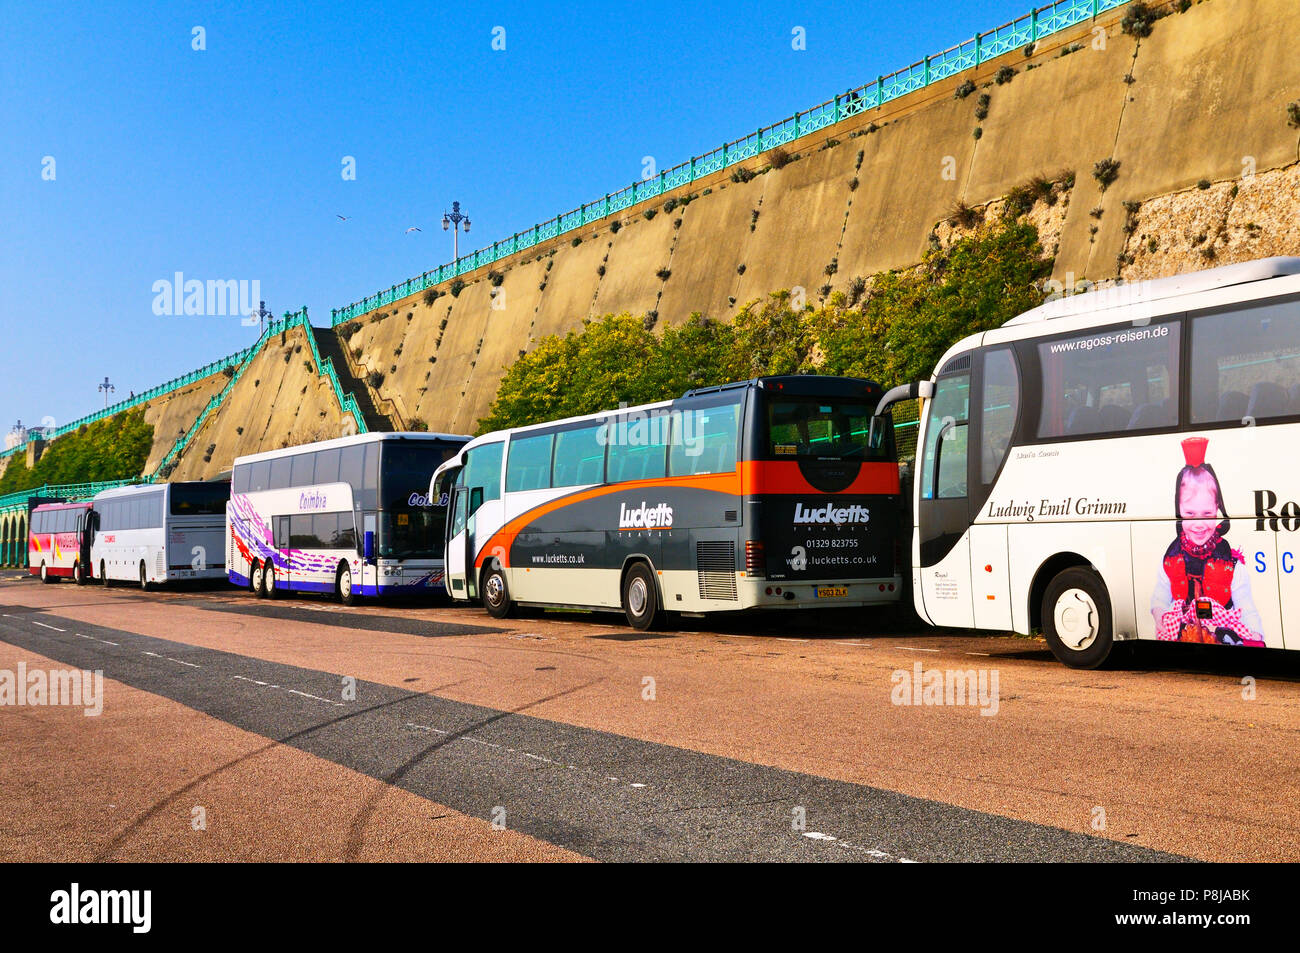 European coaches parked along Madeira Drive on Brighton seafront, East Sussex, England, UK - Stock Image